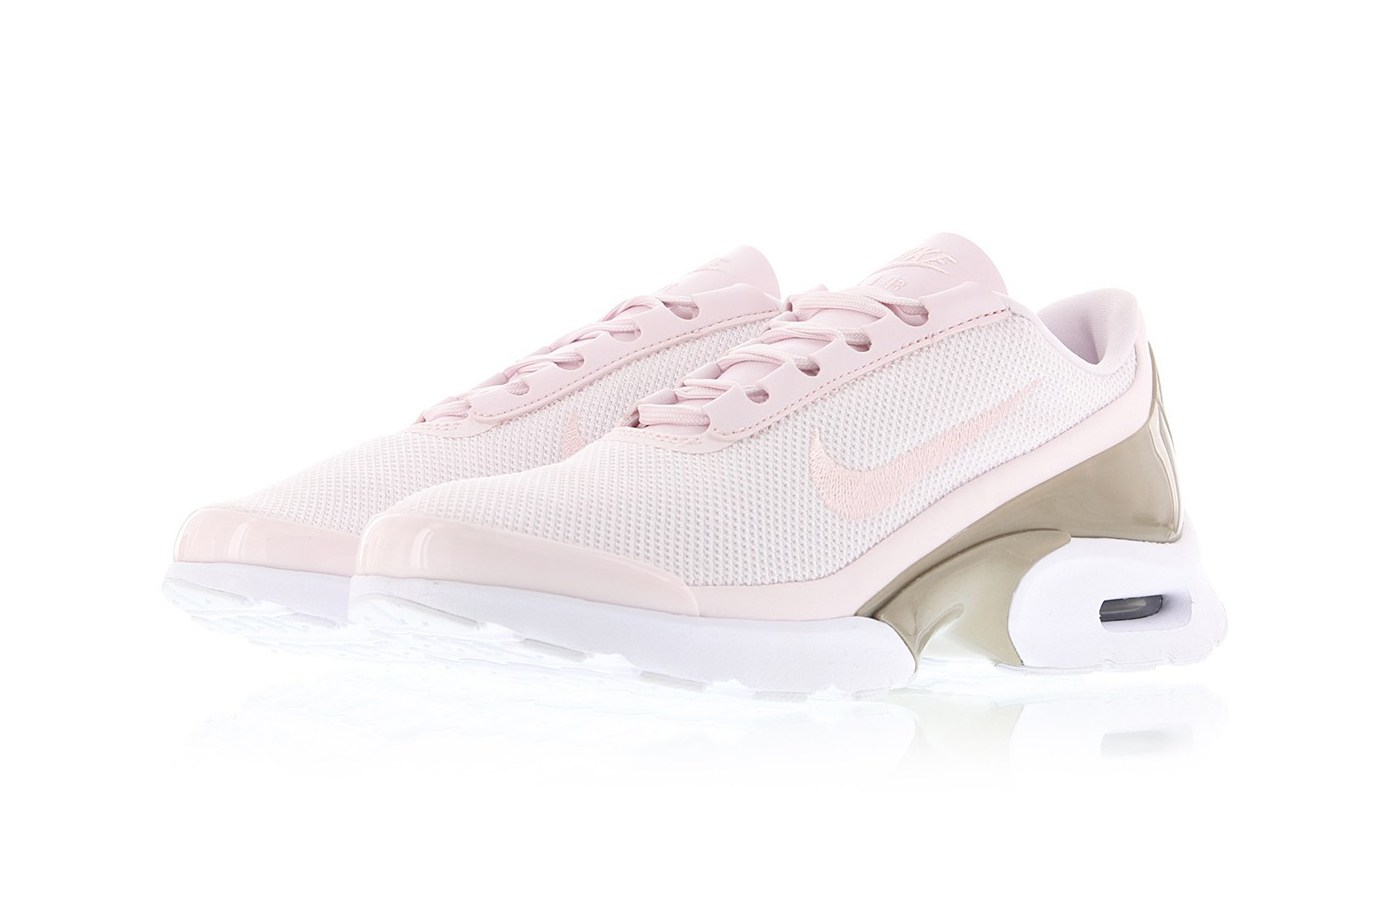 nike-air-max-jewell-premium-pearl-pink-metallic-gold-c